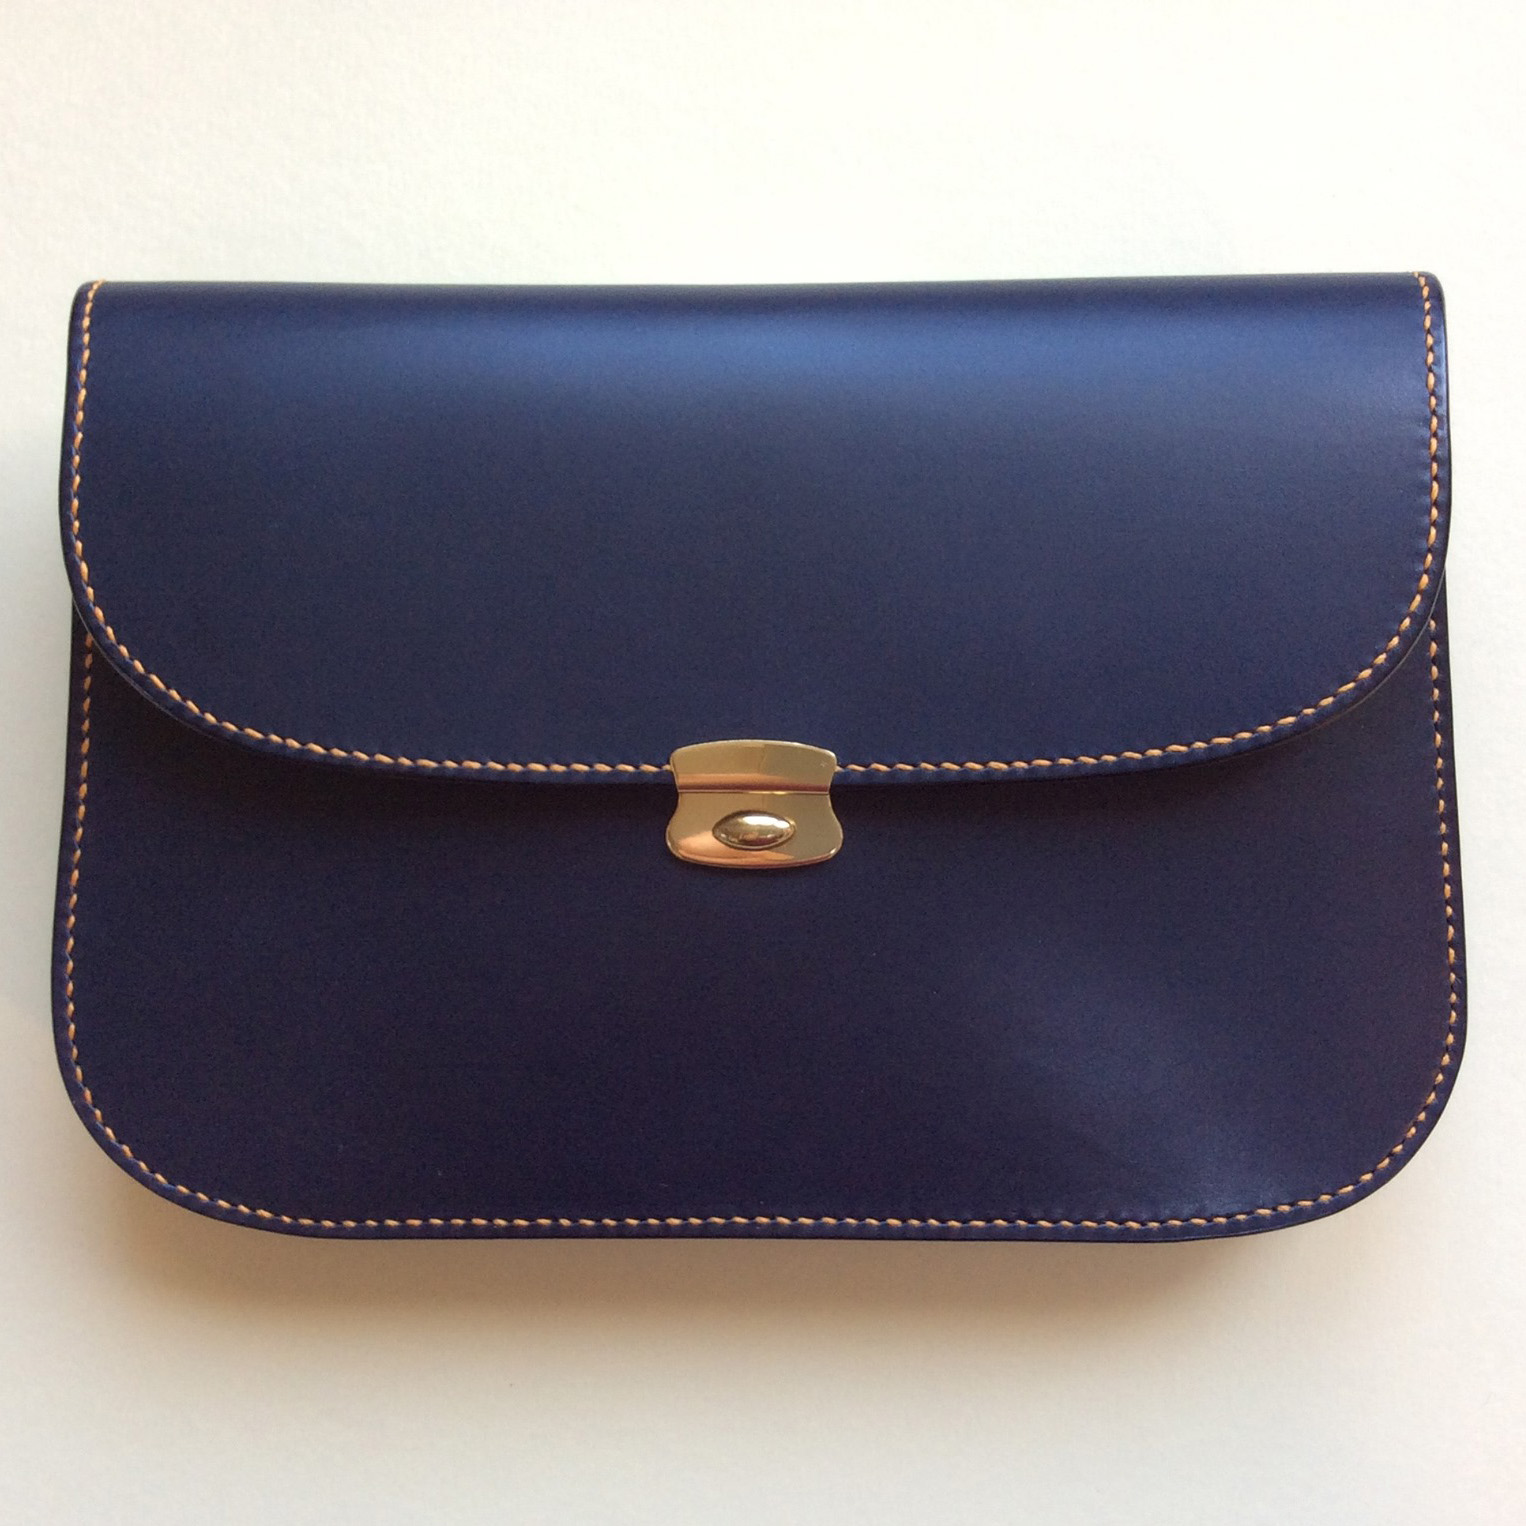 MacGregor and Michael blue pursesq